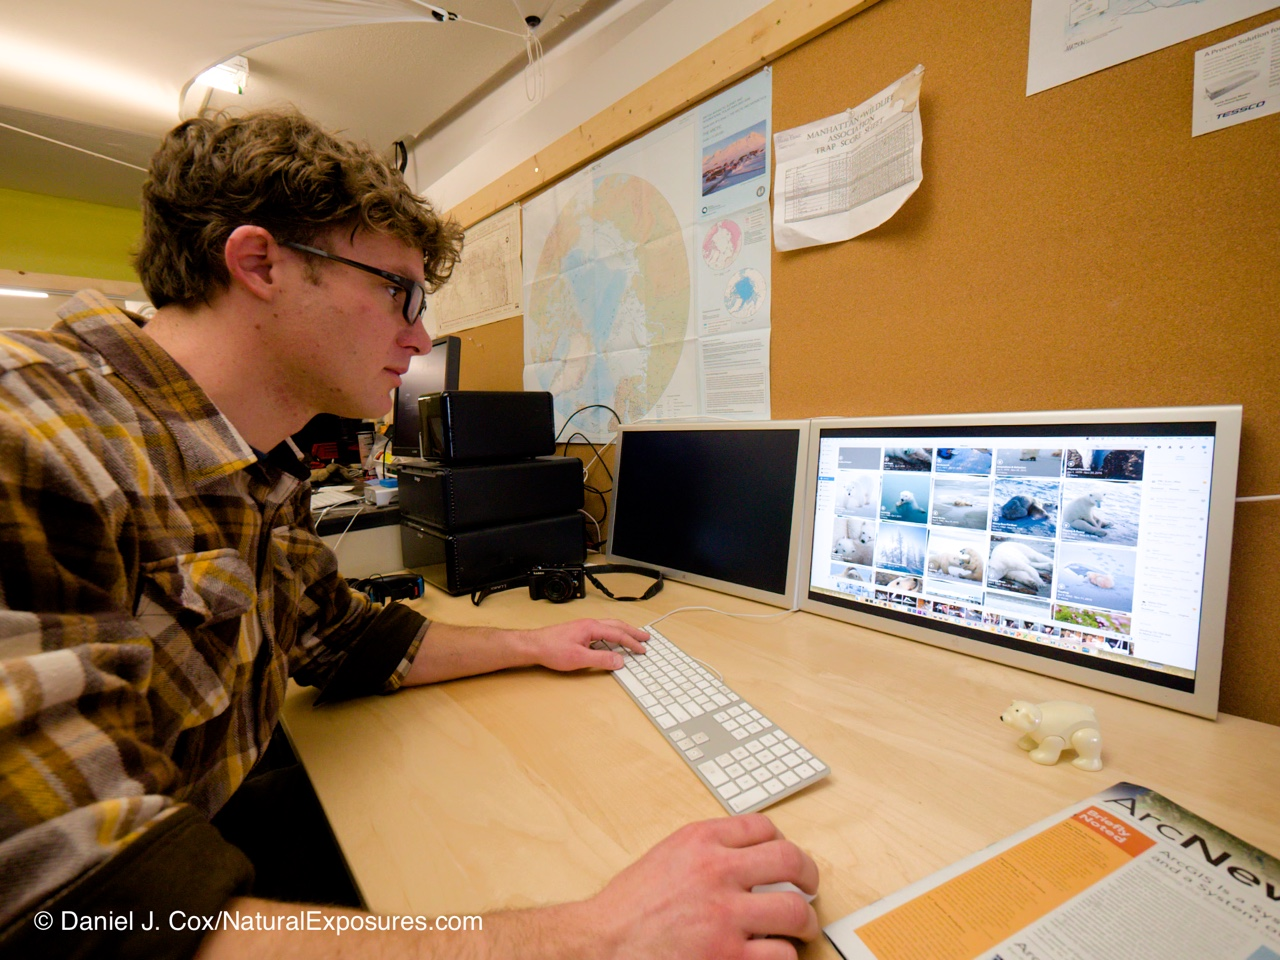 BJ Kirschhoffer working with Mylio, Drobo's holding the images in the background in the PBI photo library. Bozeman. Montana